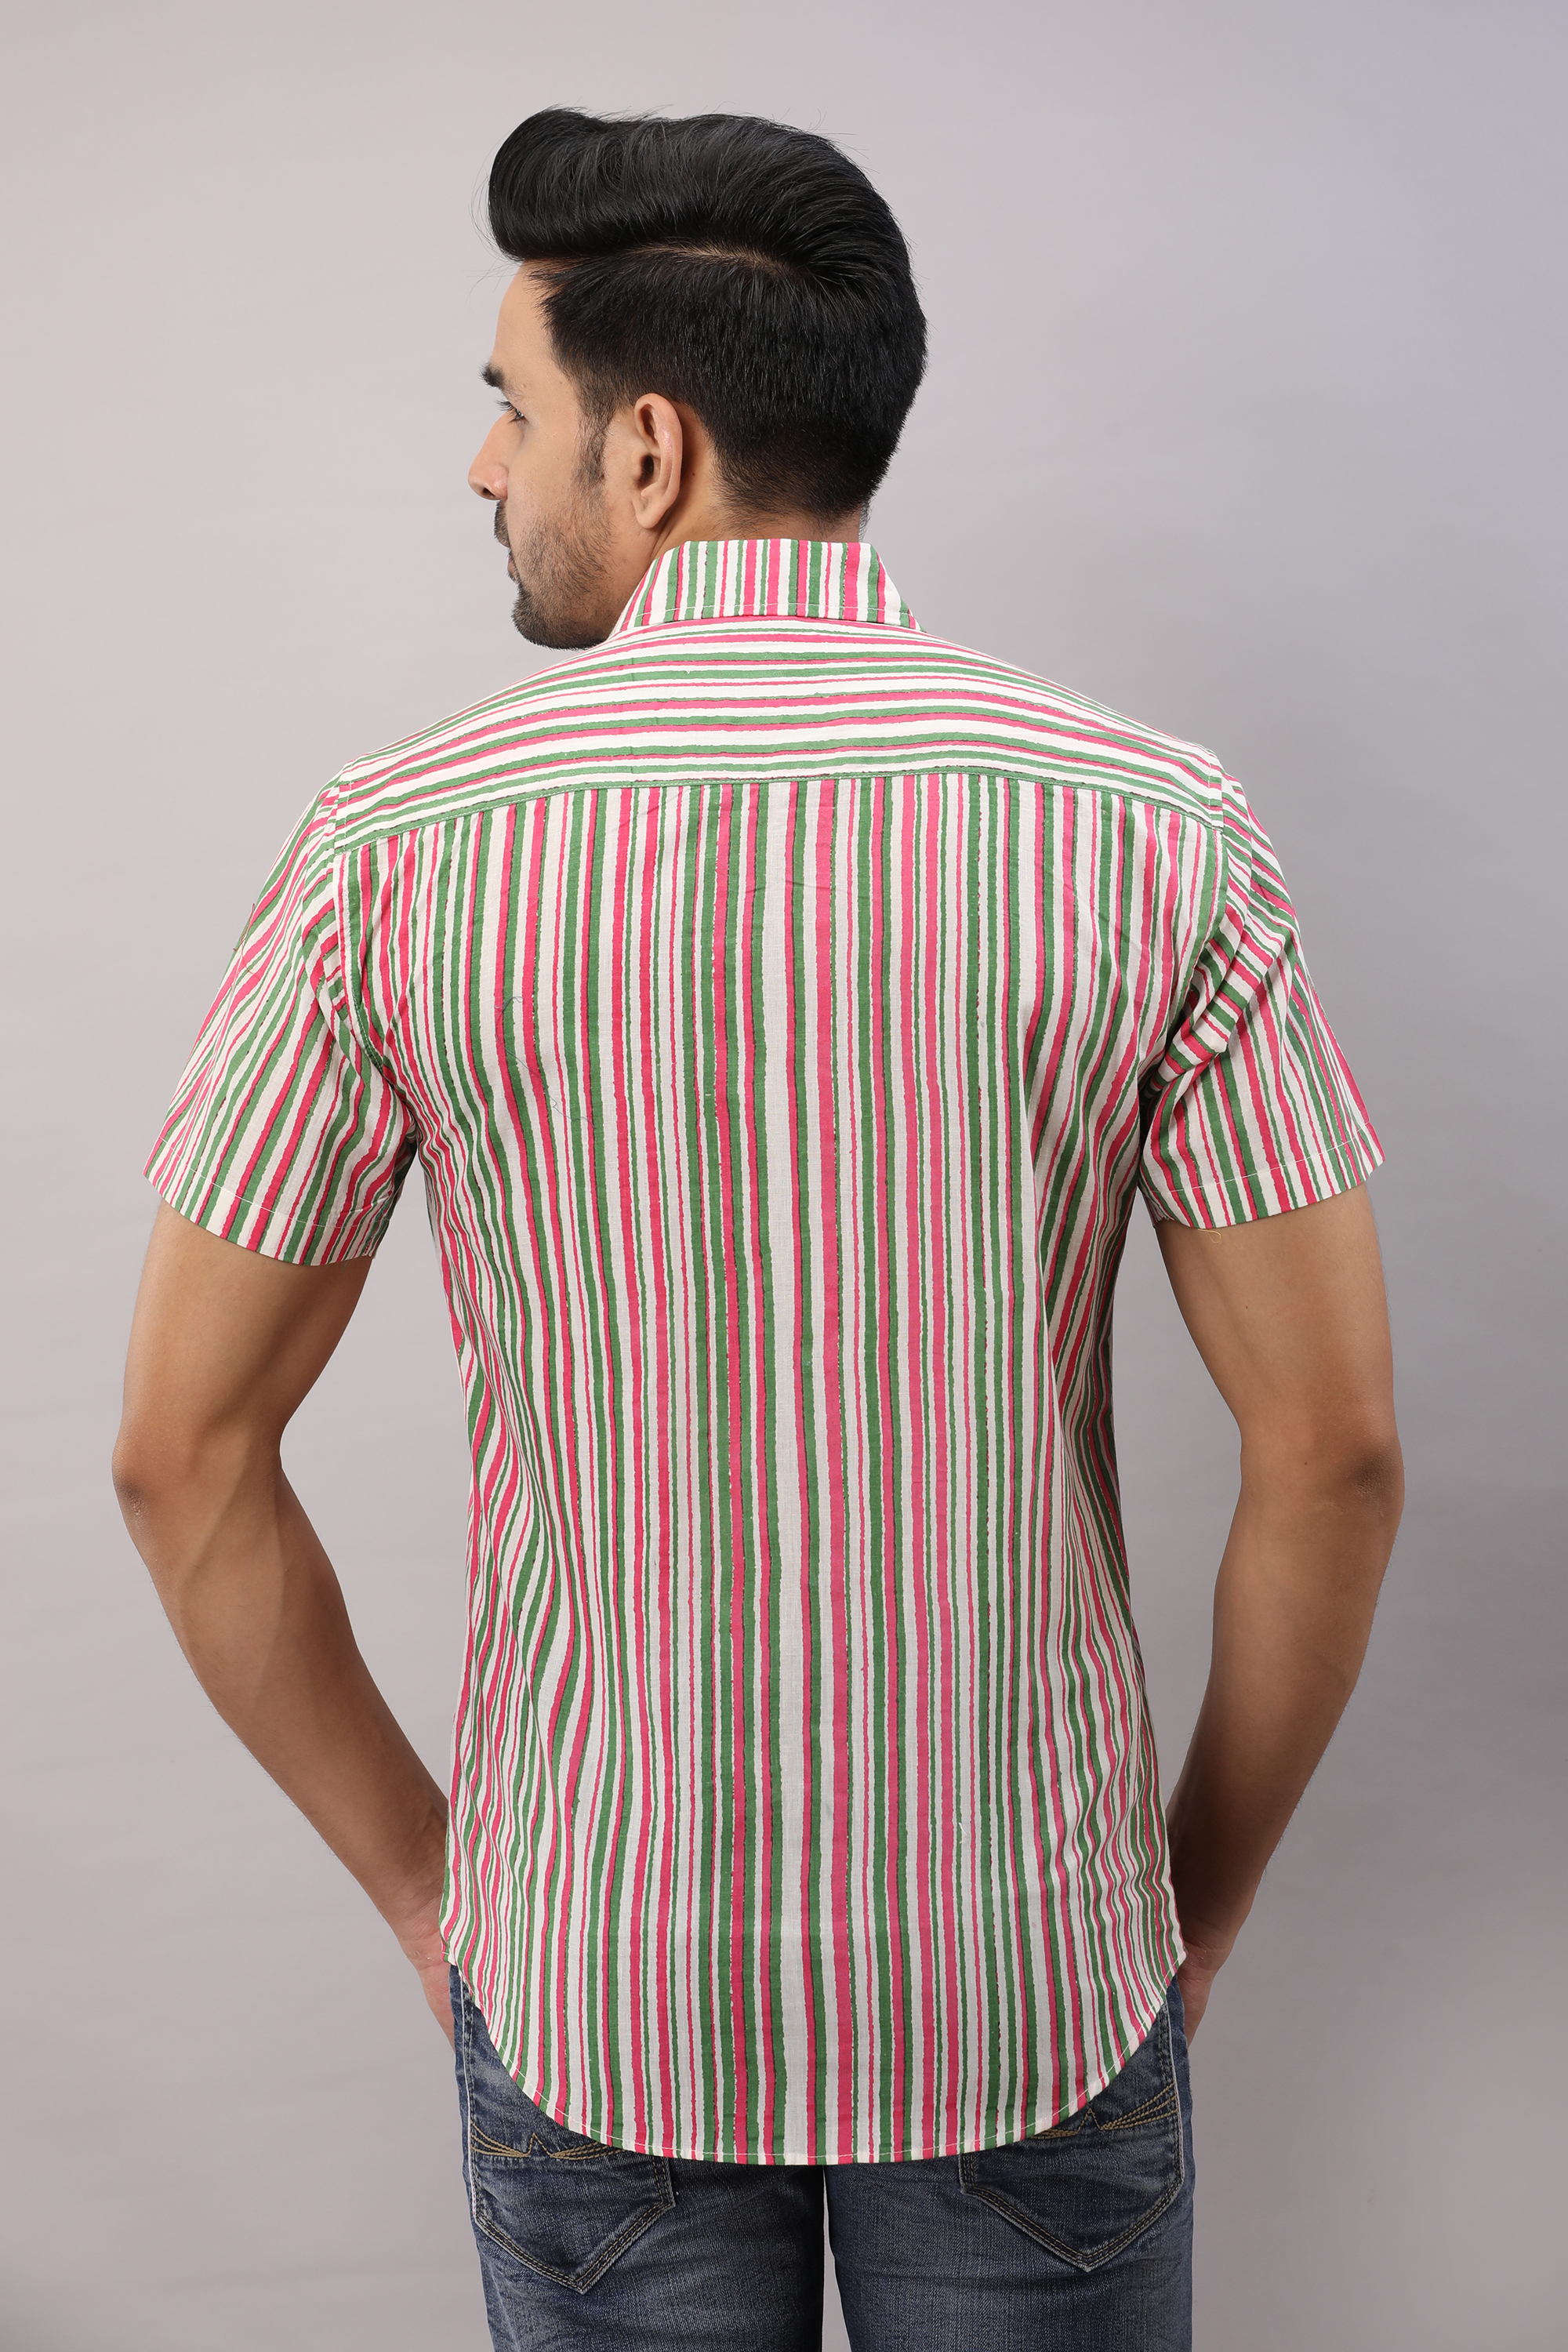 FrionKandy Cotton Striped Casual Multicolored Regular Shirt For Men - XL